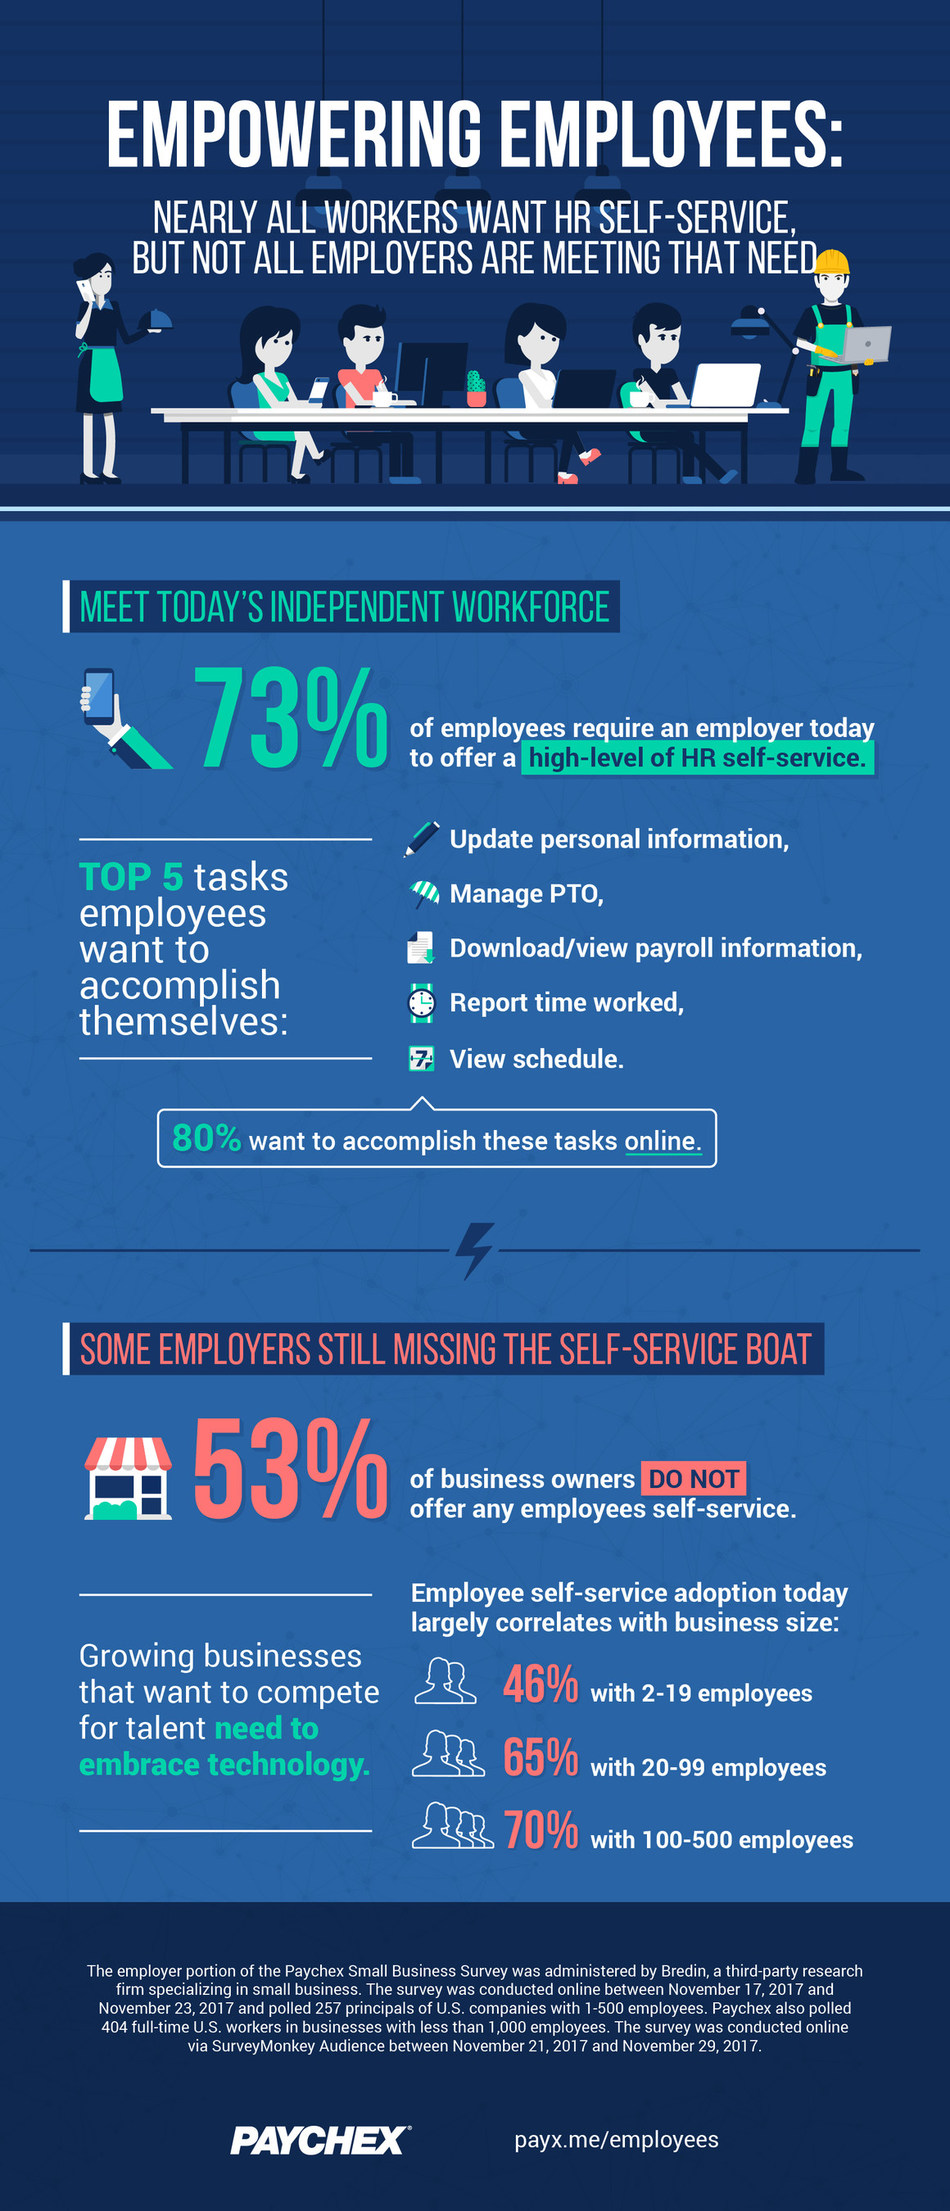 According to Paychex research, 73% of U.S. employees prefer to accomplish a variety of HR tasks on their own via self-service.